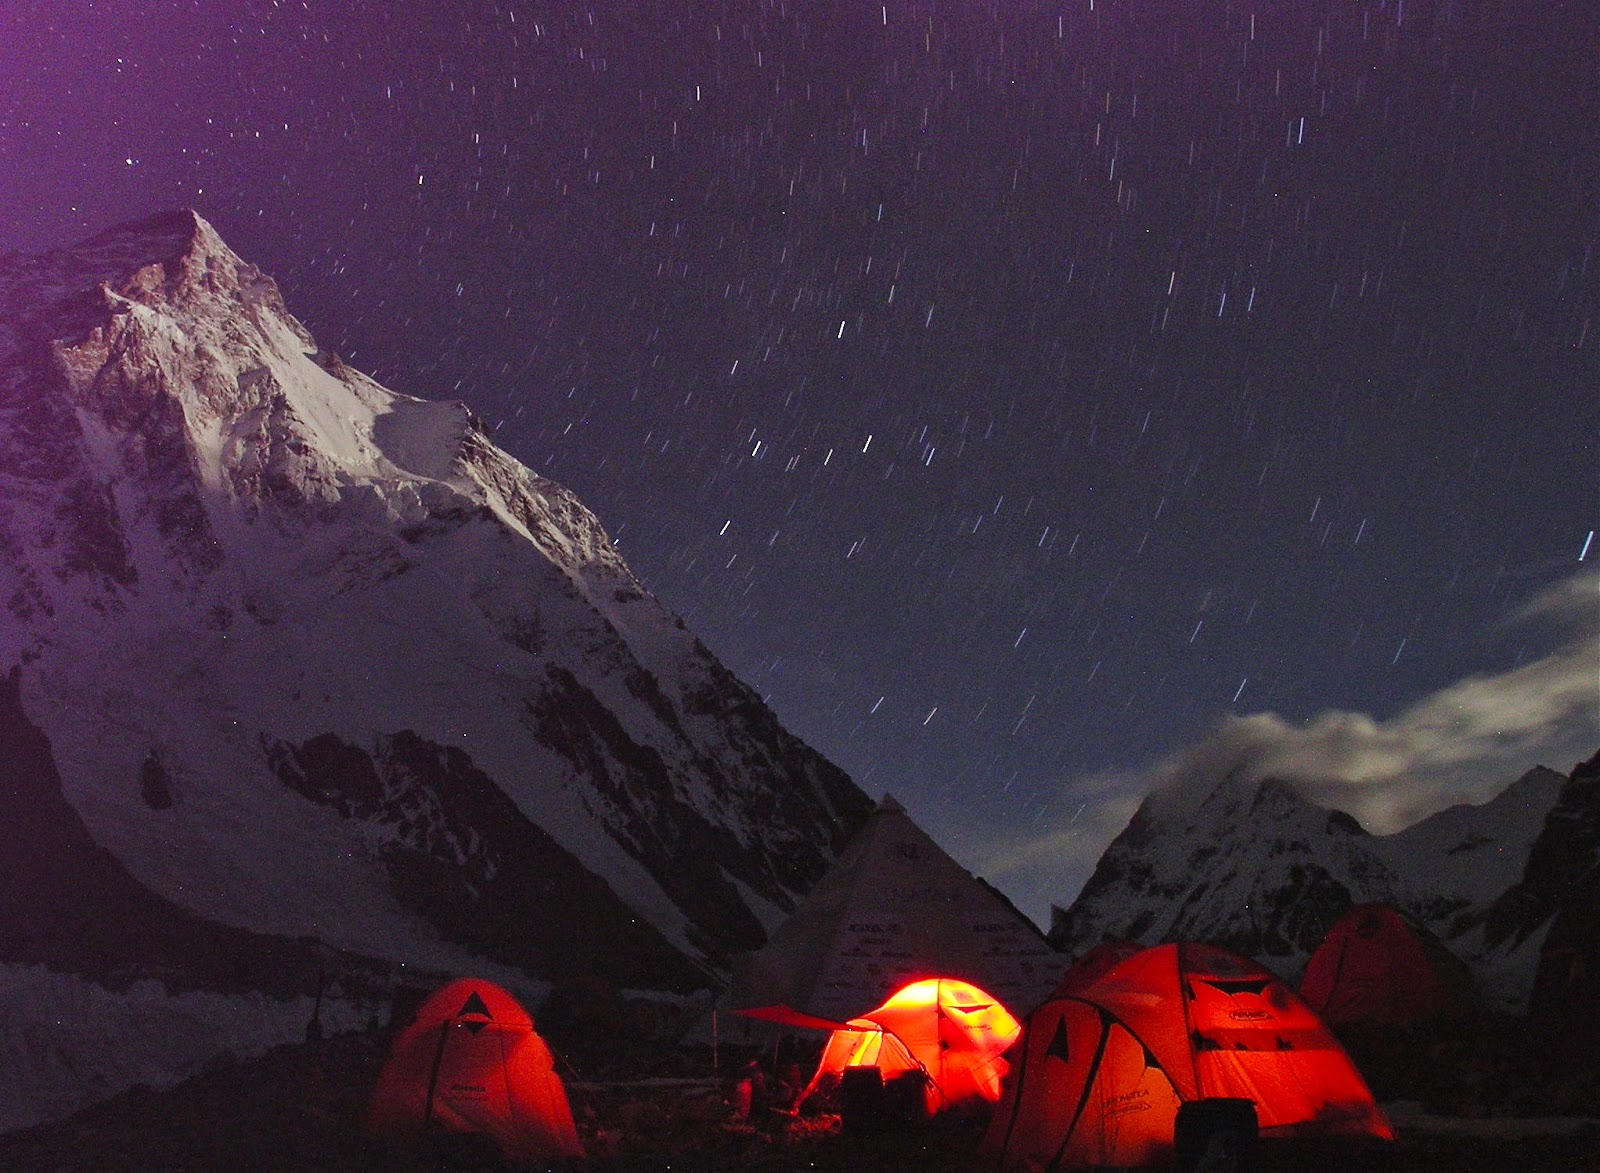 K2 Base Camp At Night the camps on the mountain